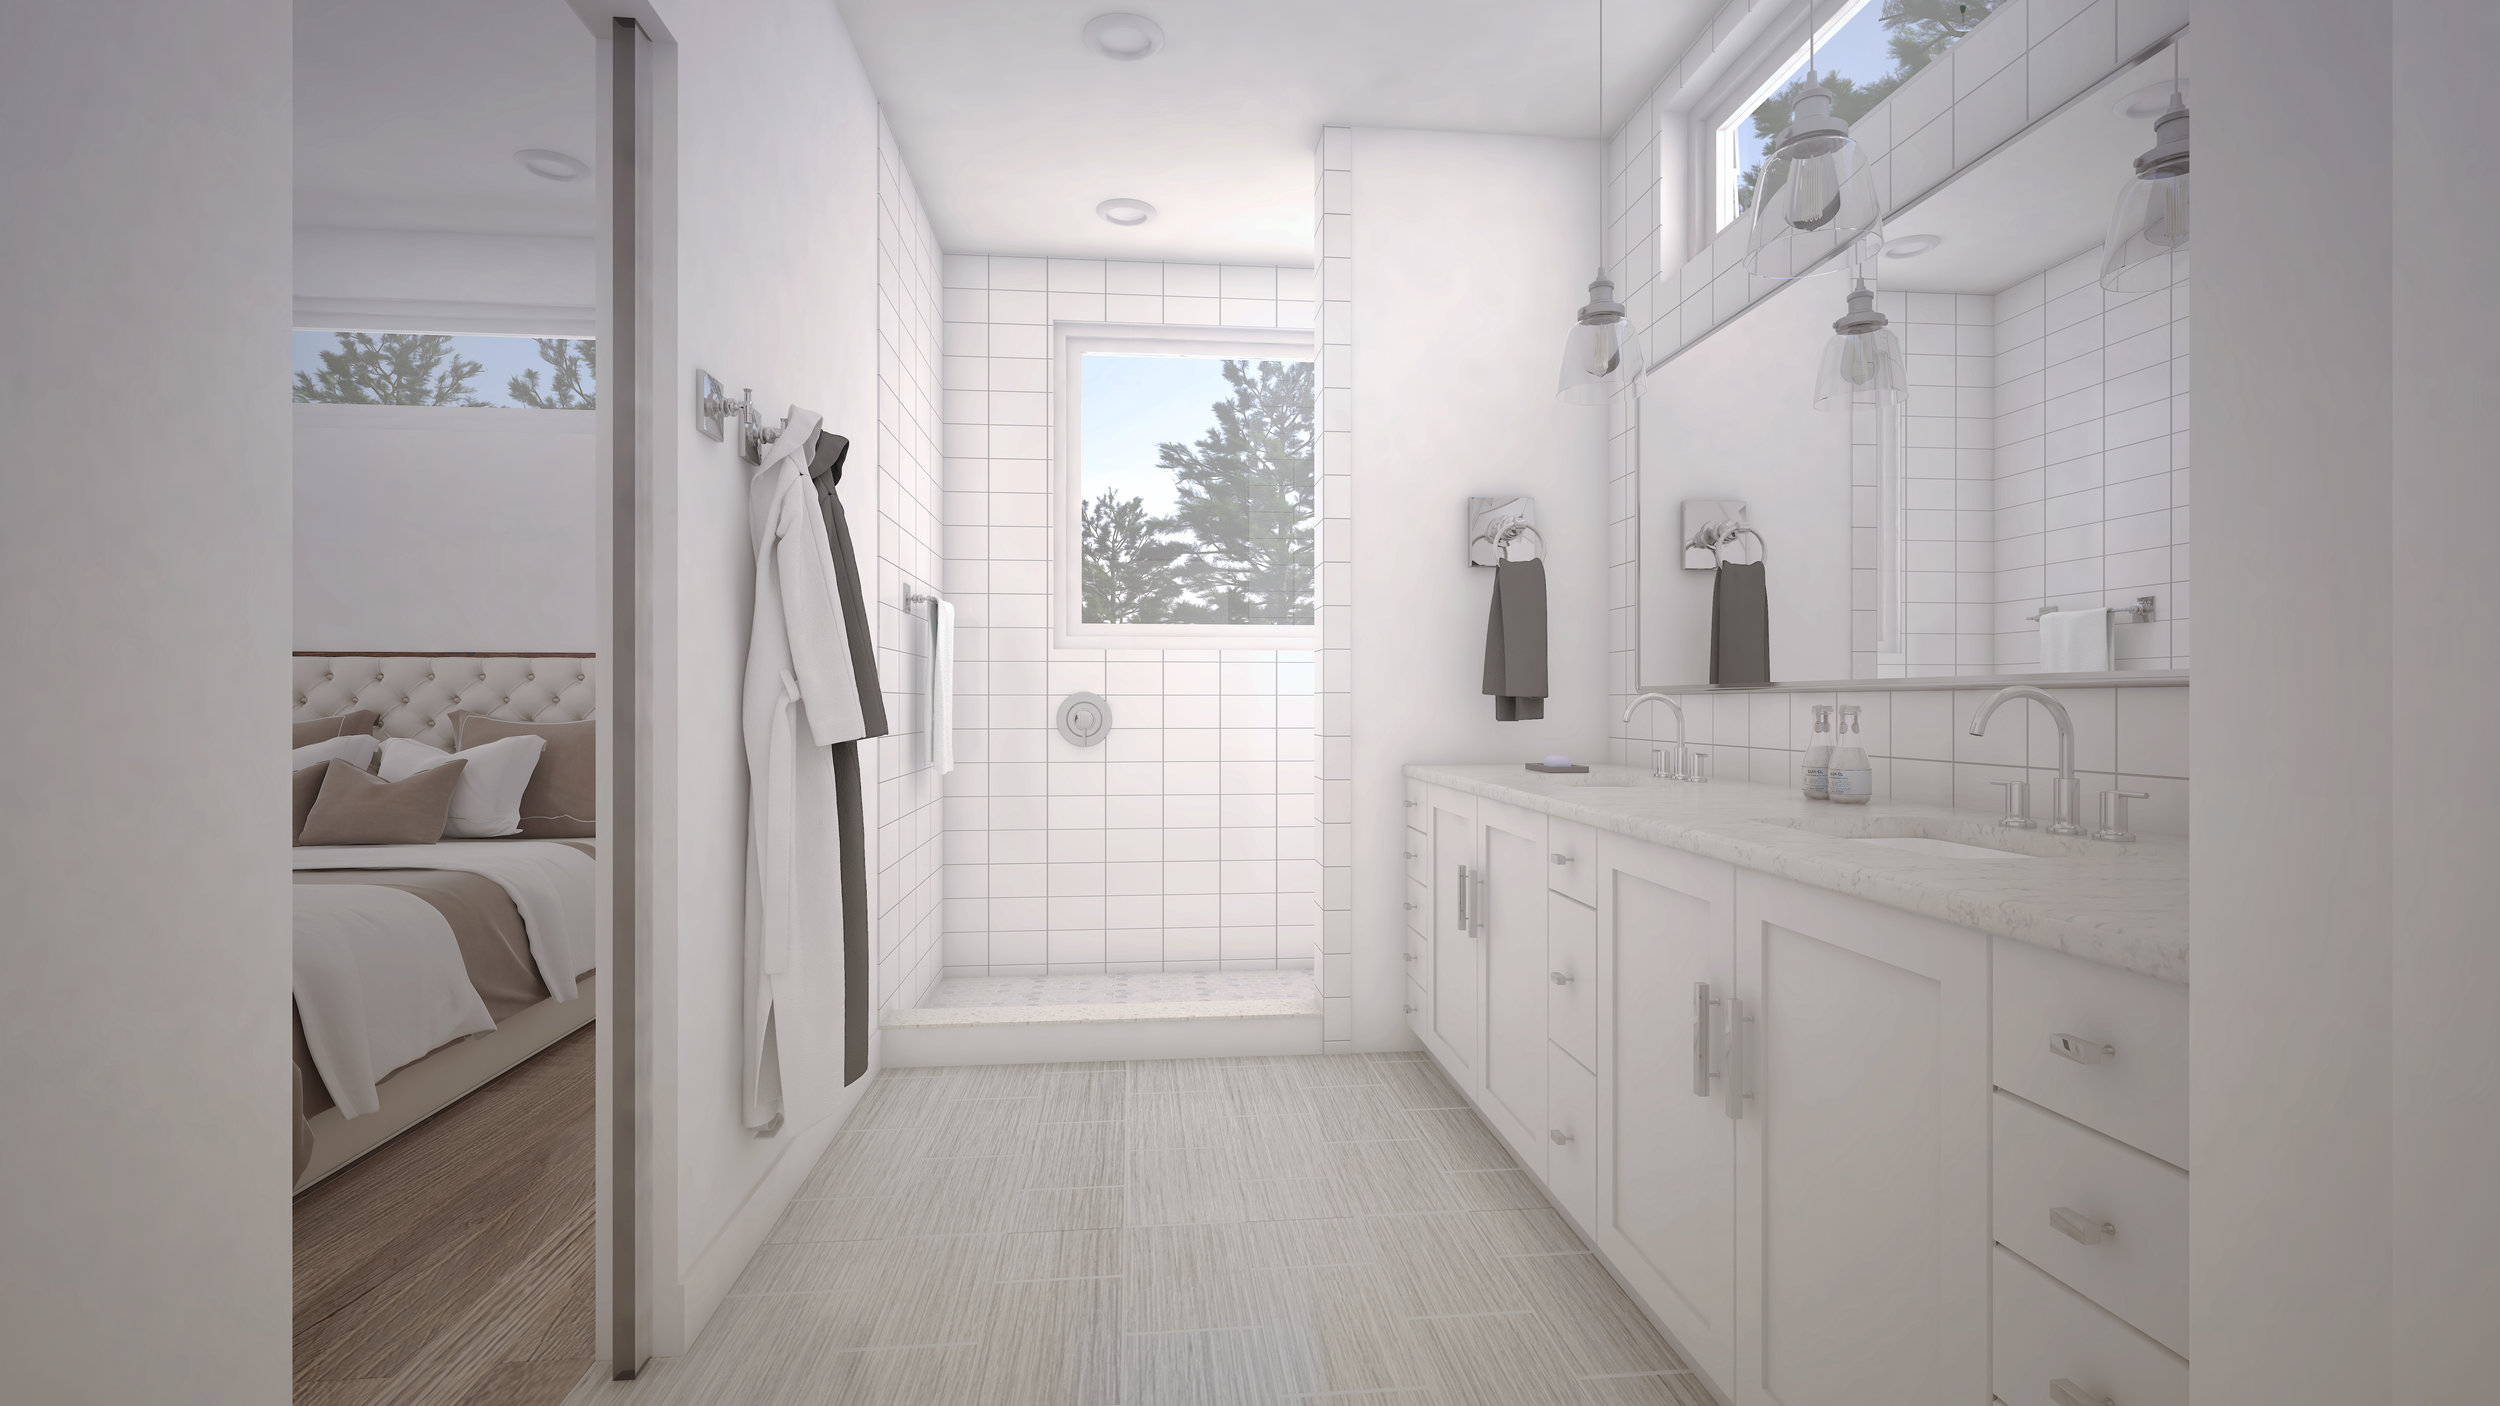 This white en suite master bathroom is a blank canvas. Go nuts or stay neutral, the choice is yours.